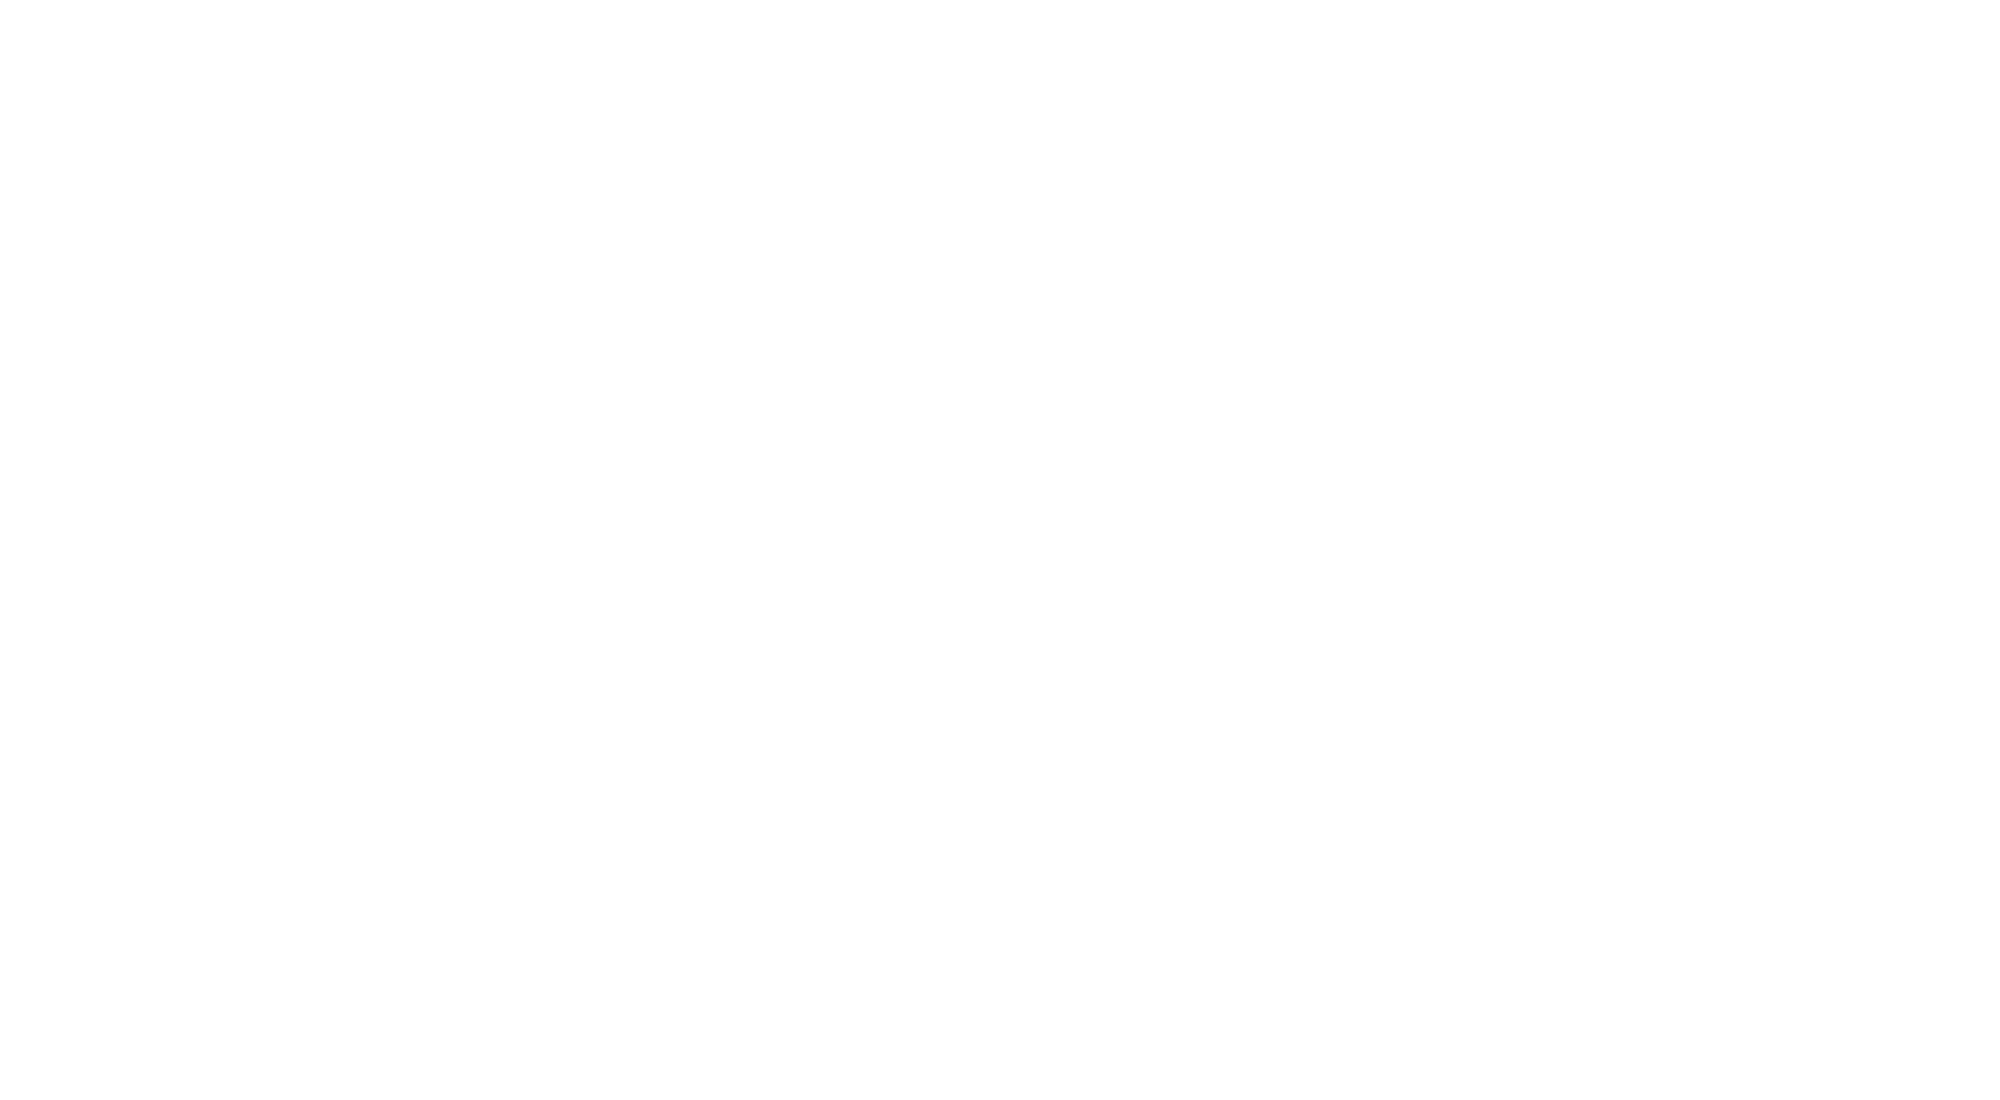 One Cup is enough!/OUR COFFEE & ROASTING